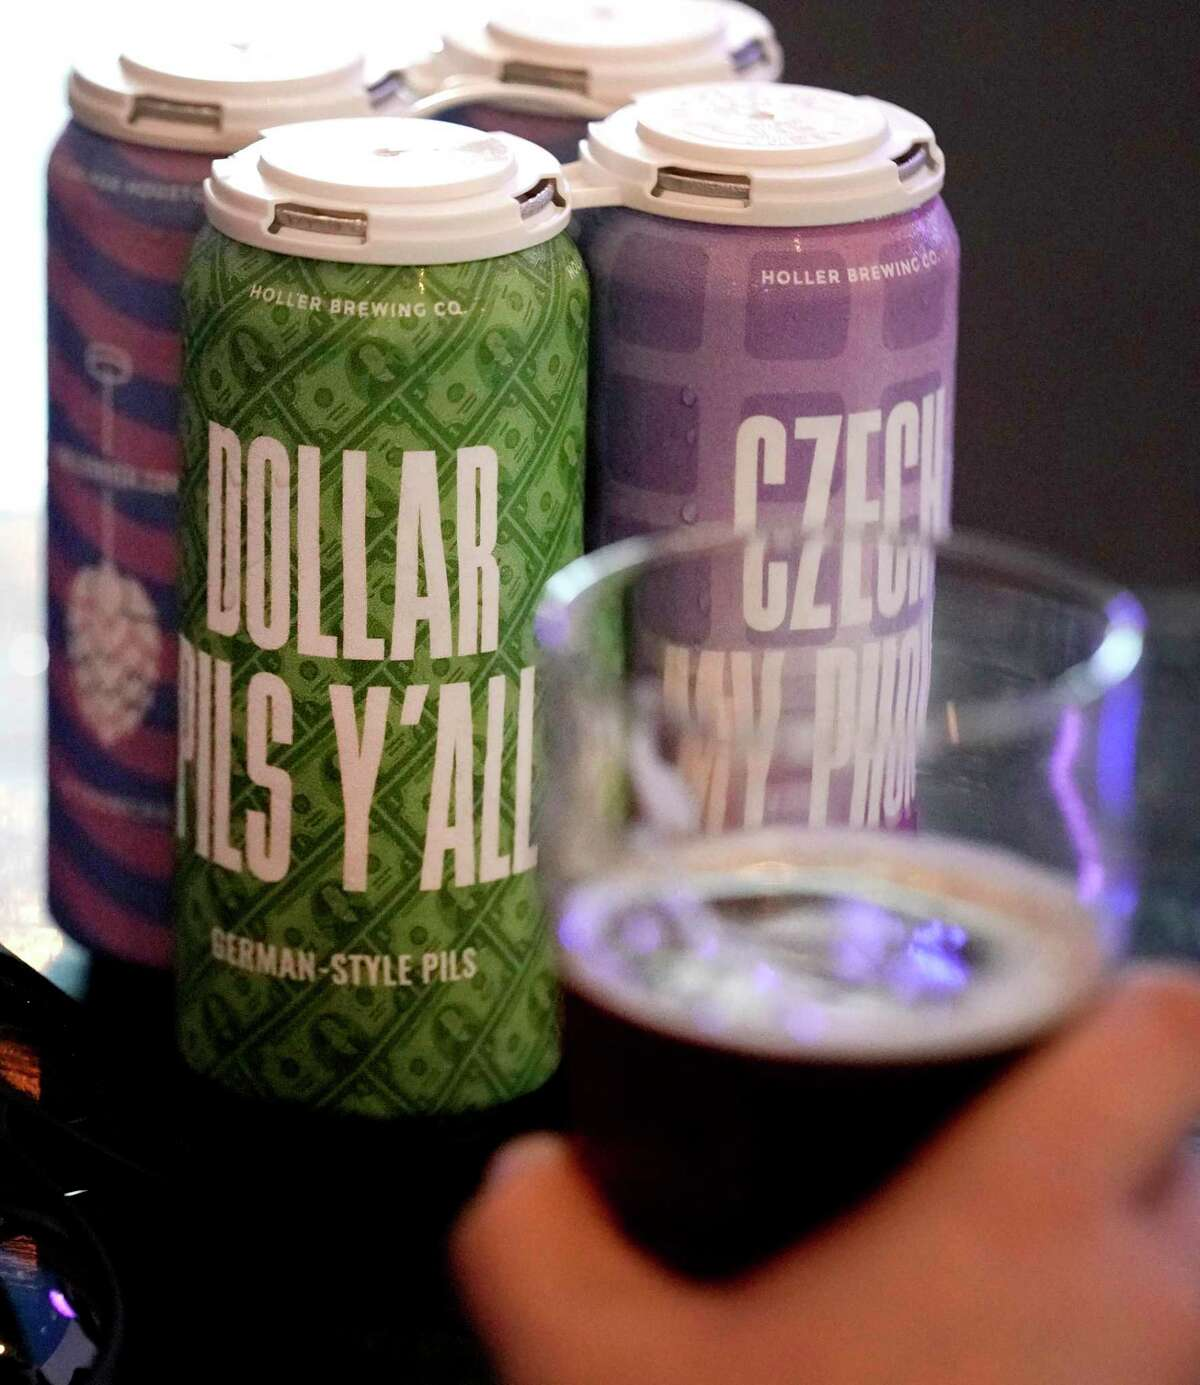 Cans of beer purchased to go sit on the table as customer Evan Camp of Houston drinks a beer at Holler Brewing Co., 2206 Edwards St., Sunday, Sept. 1, 2019, in Houston. Texas became the final state in the country to legalize take-home sales from manufacturing breweries as the result of a law passed during the 2019 Texas legislative session. With the new law, beer can be sold at 10 a.m. instead of noon on Sundays.